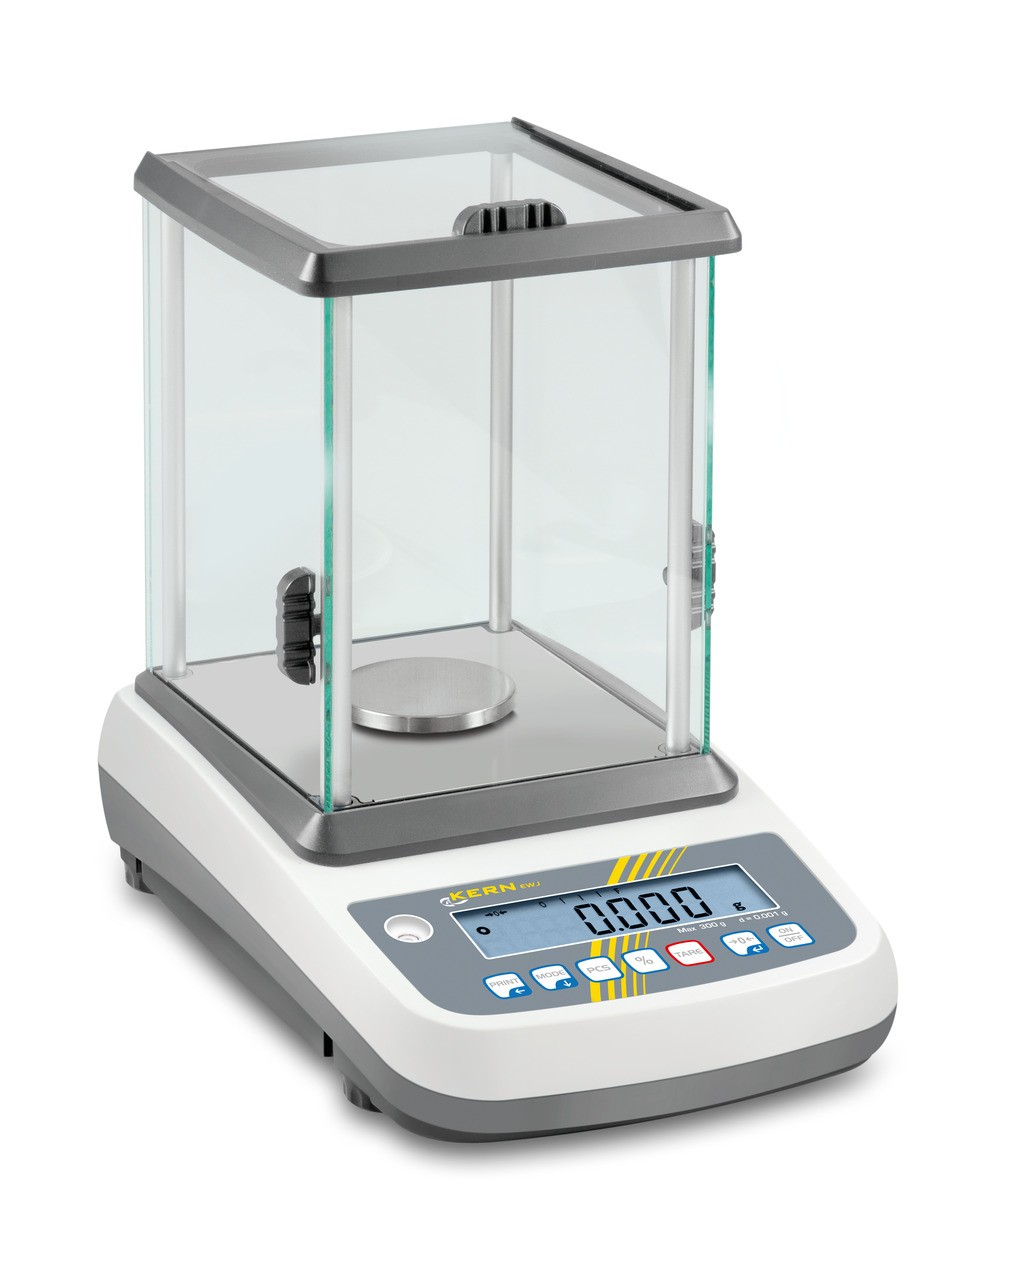 Precision Scale Kern Ewj 300 3h Precision Balance With Automatic Internal Adjustment